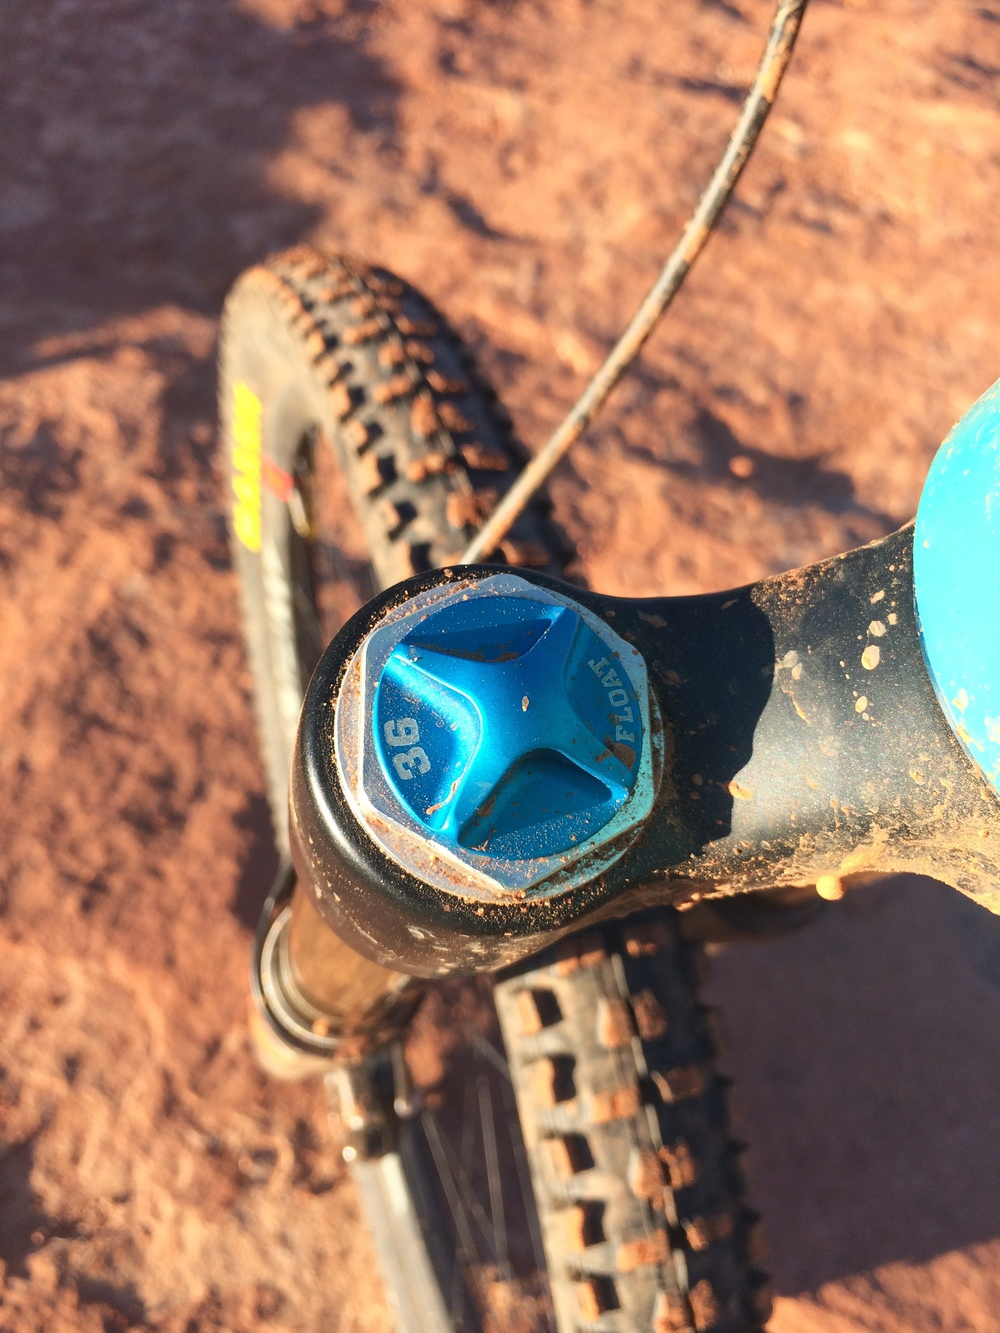 The air pressure in your fork can be adjusted with a shock pump by unscrewing a cap on the top of the fork's crown.